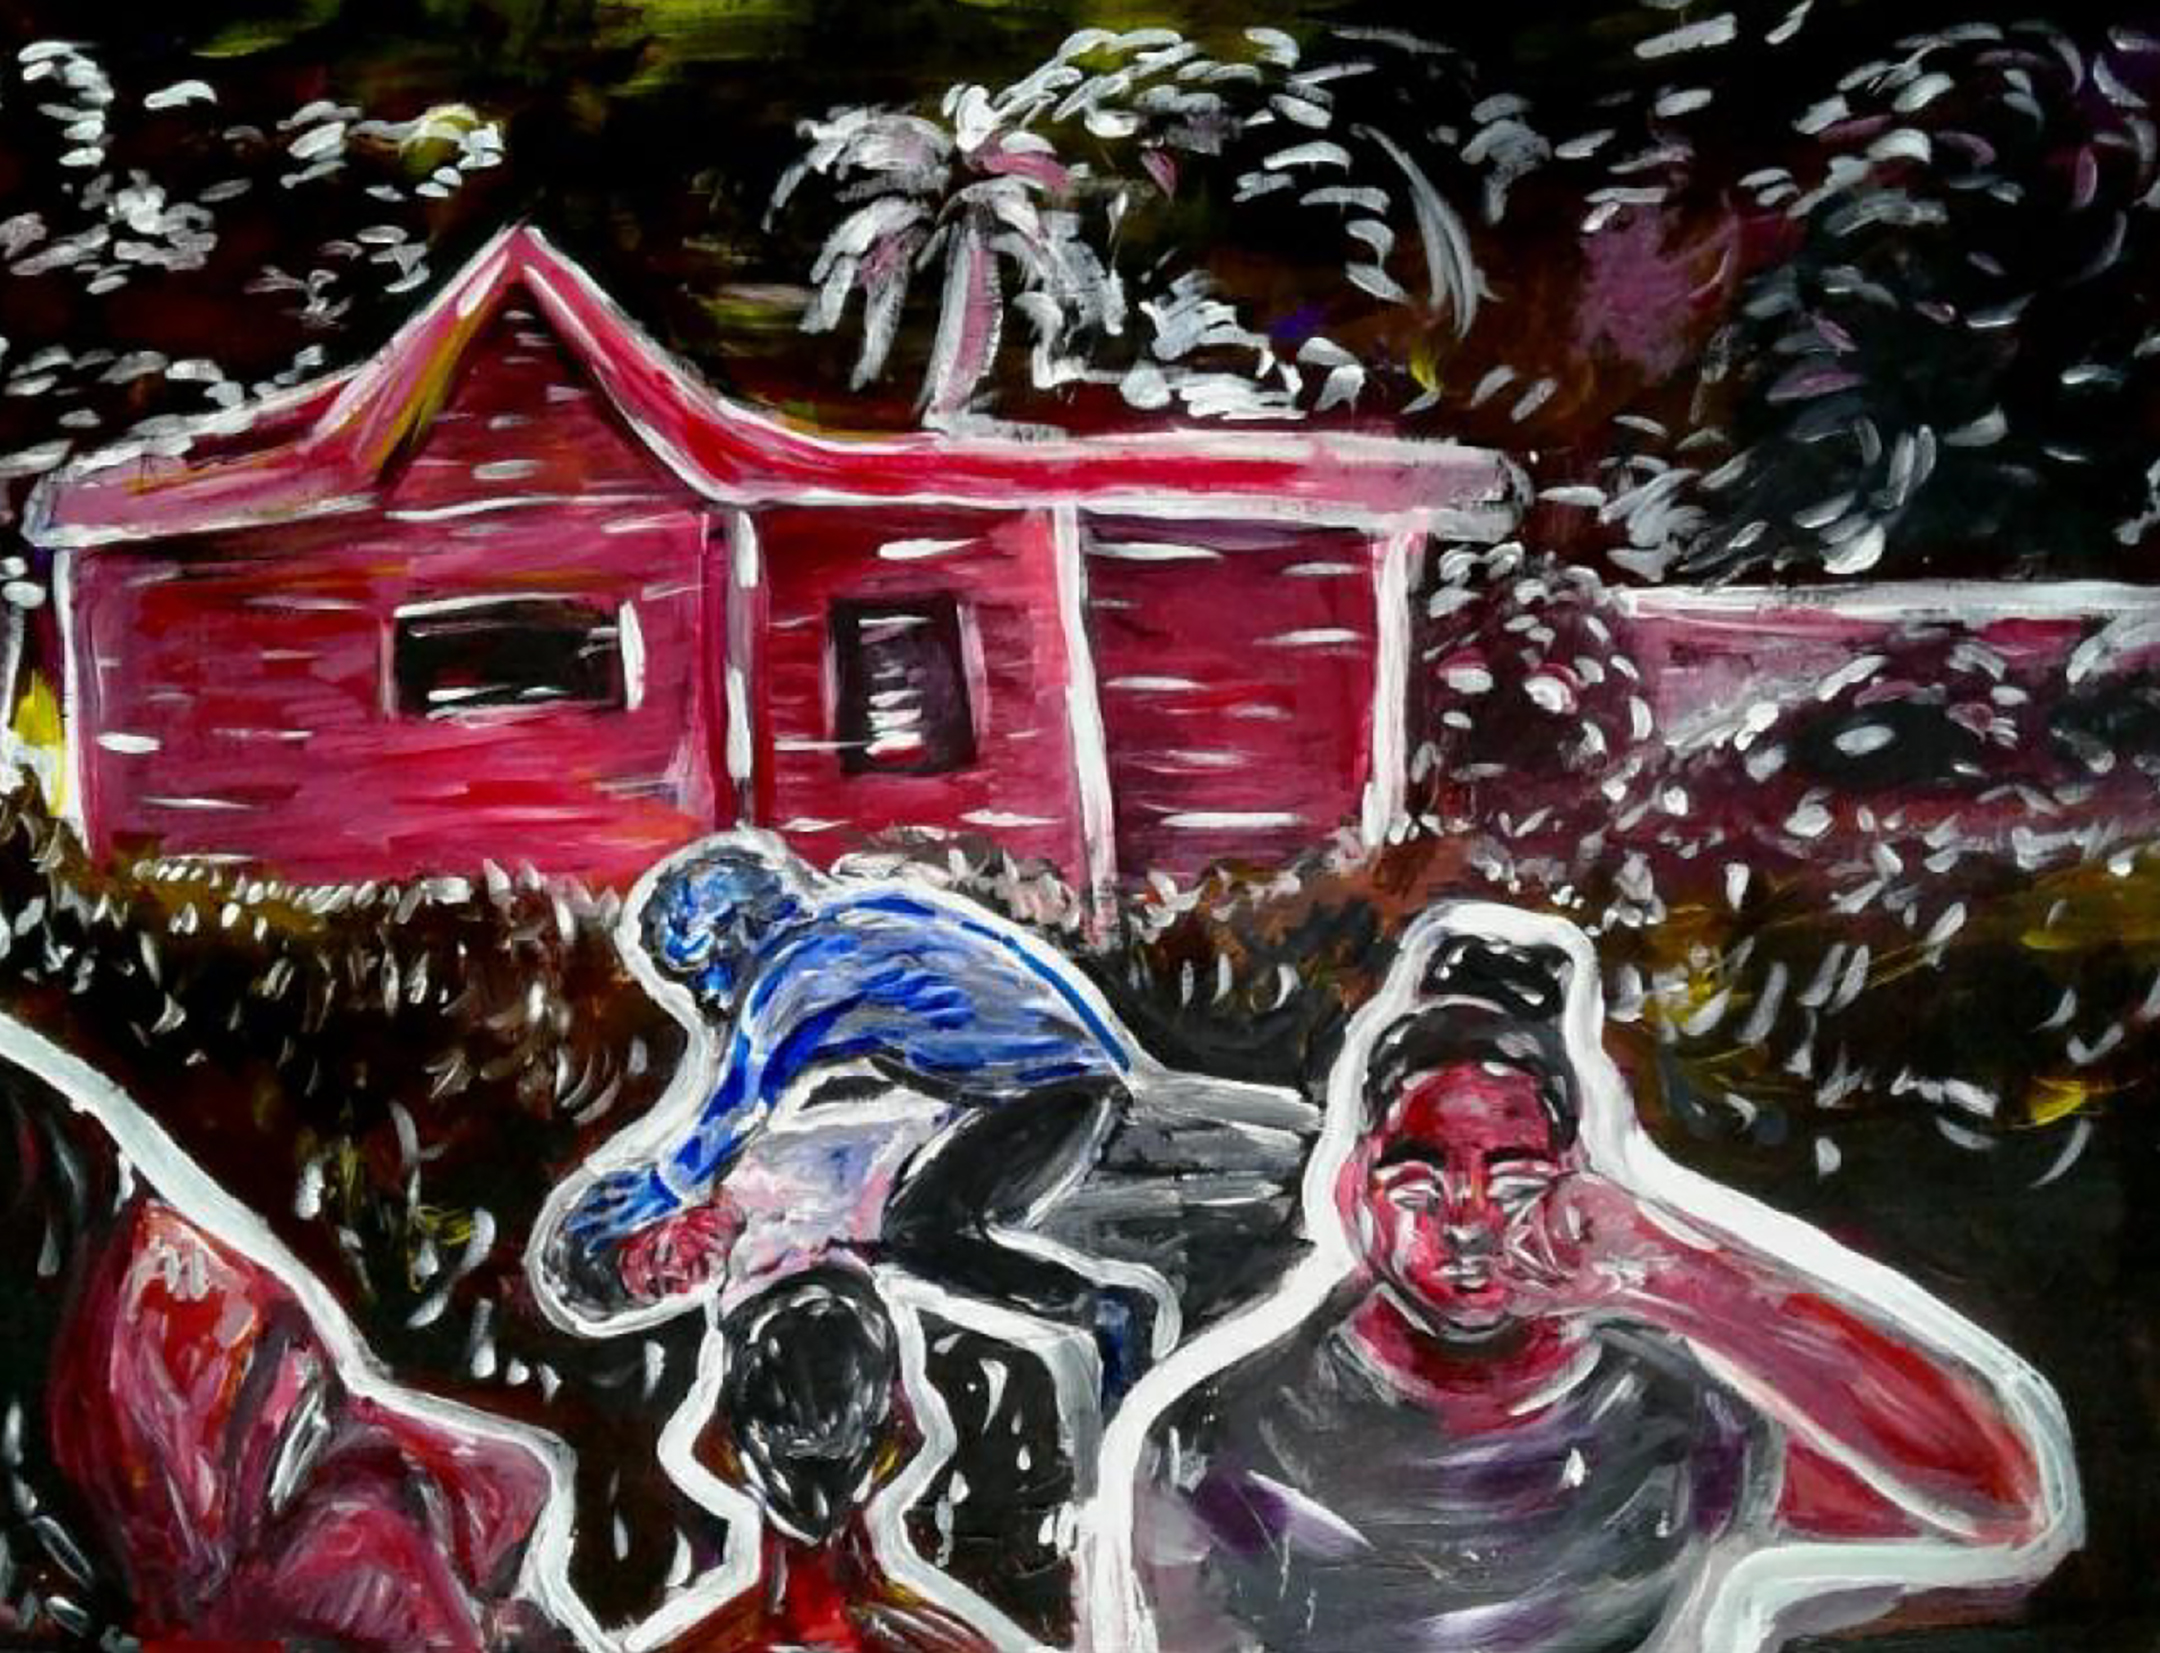 Illustration in black, red, and other muted colors, of a police officer holding down a man, kneeling on his back, in front of a house as a woman runs away, grabbing her head, in the foreground